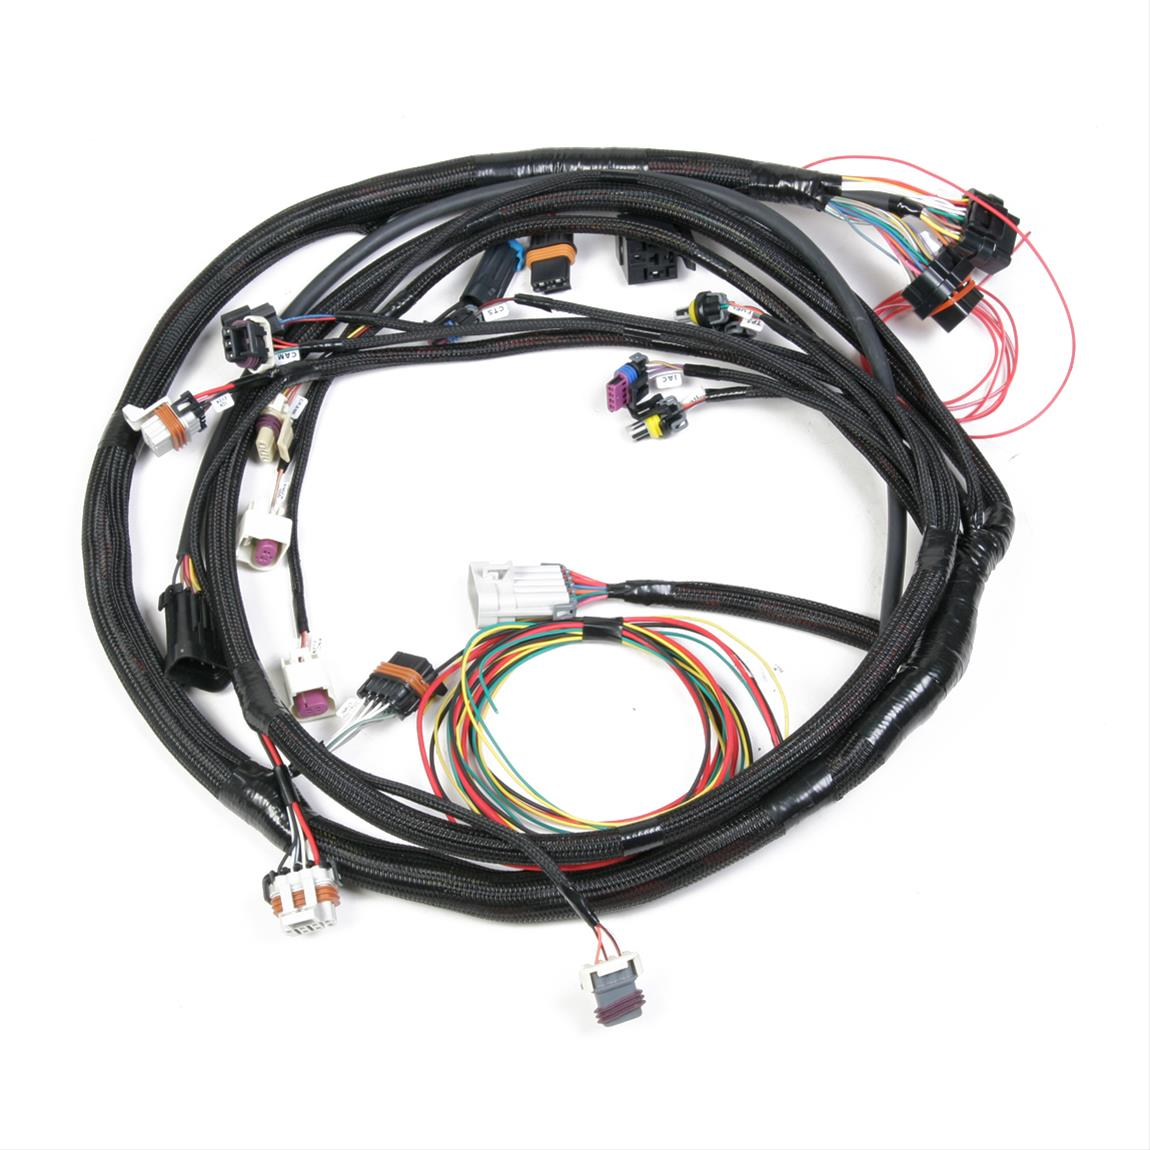 hight resolution of holley efi systems wiring harnesses 558 103 free shipping on orders over 99 at summit racing